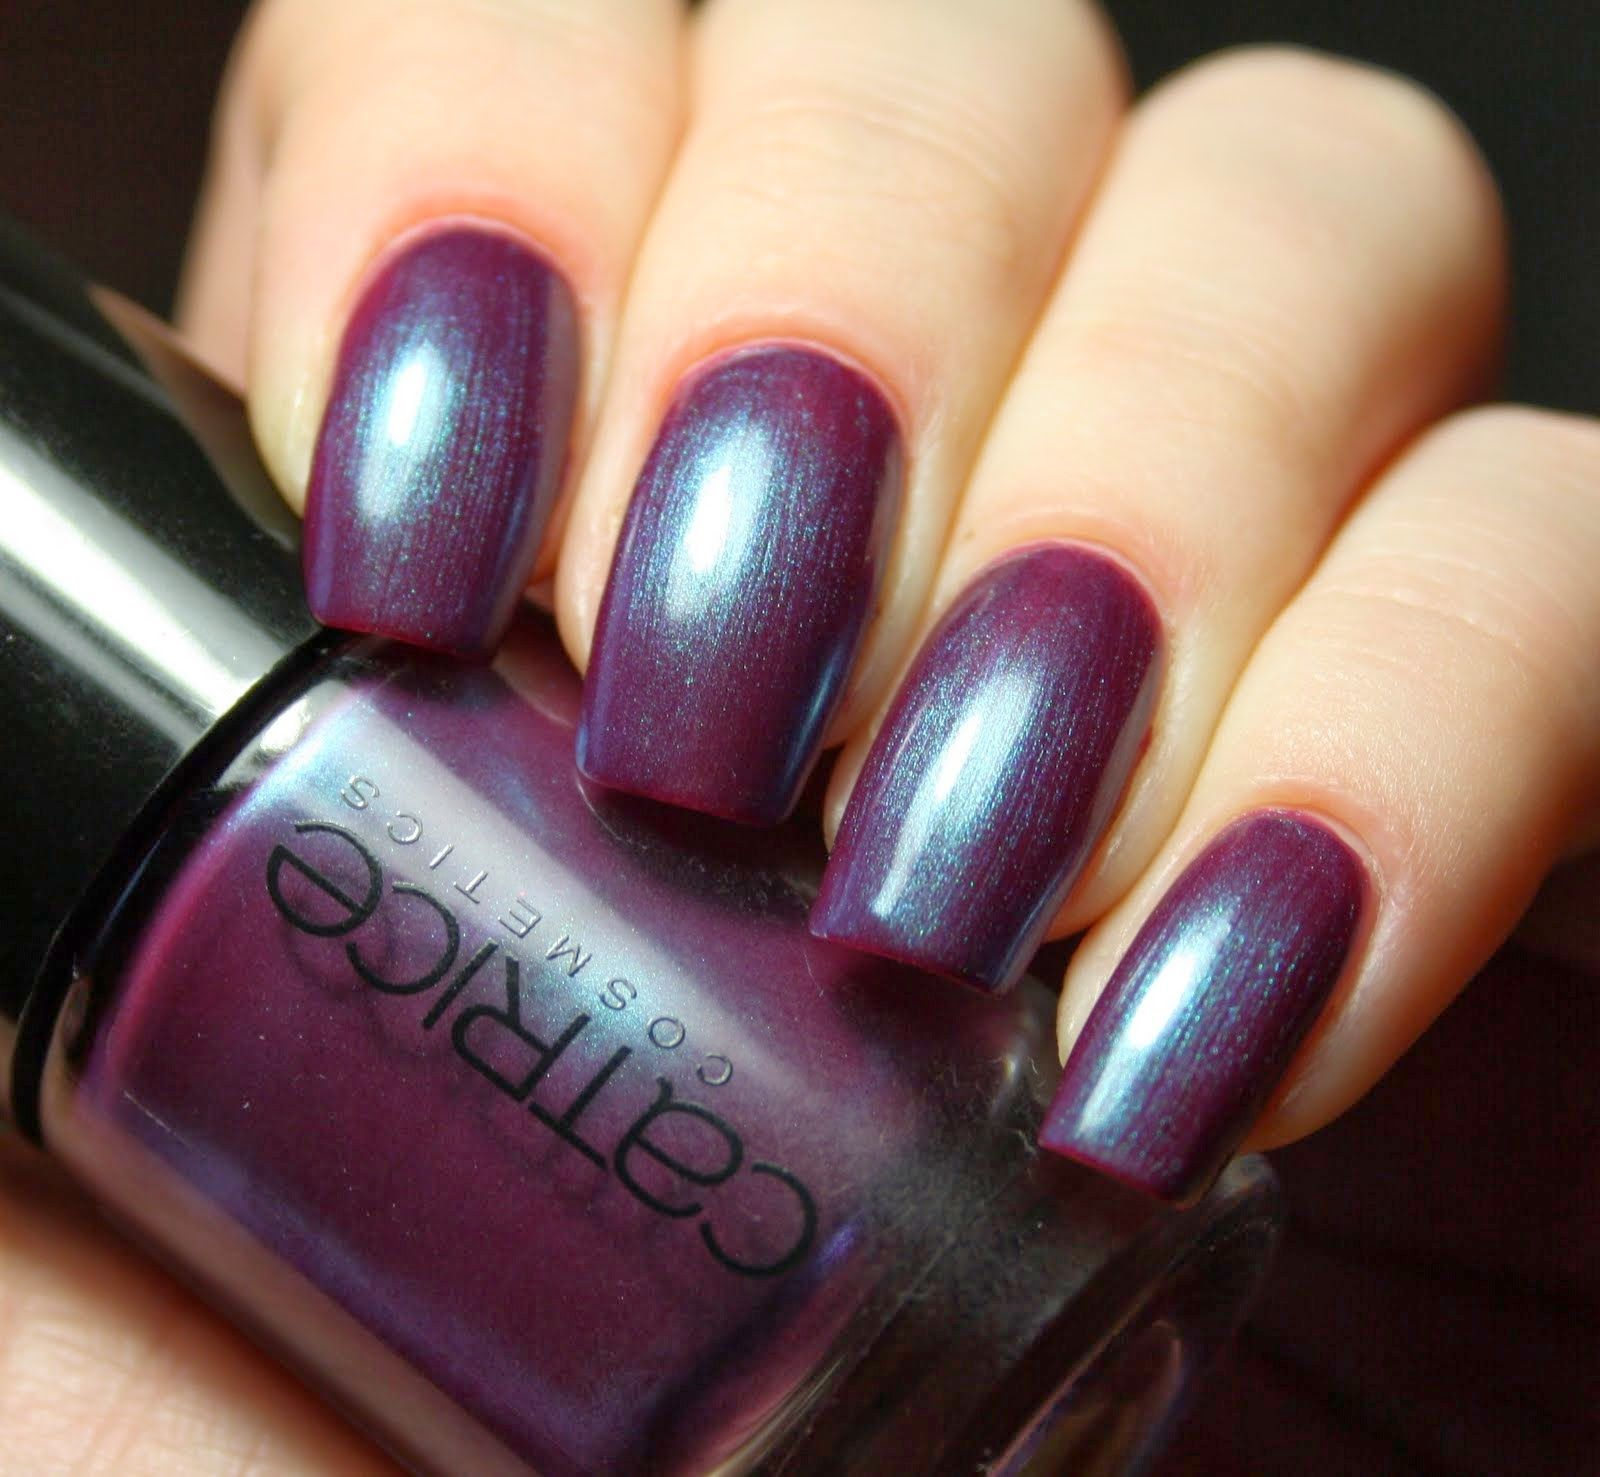 Catrice - Berry Potter & Plumbledore - THE NAME!!! | Nail Polish ...